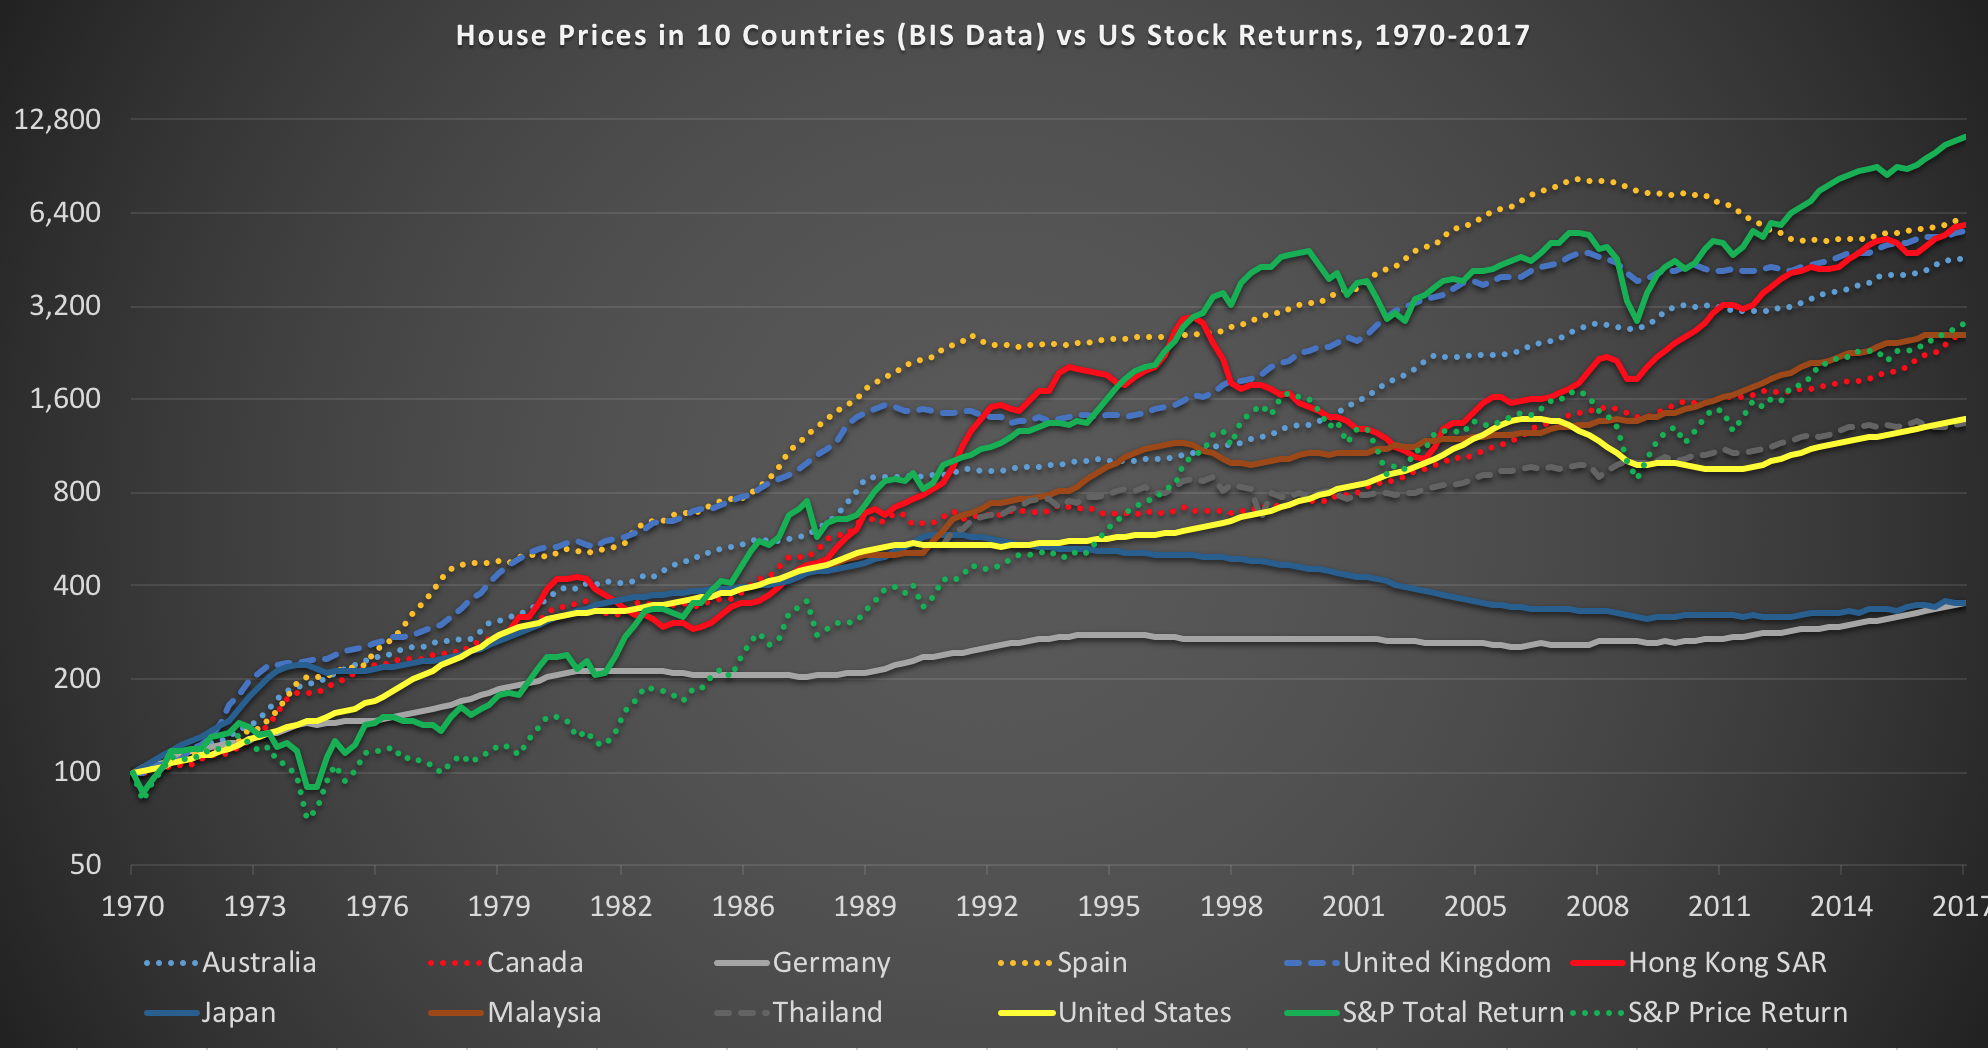 Stocks vs Real Estate: Residential Property prices in 10 countries according to BIS